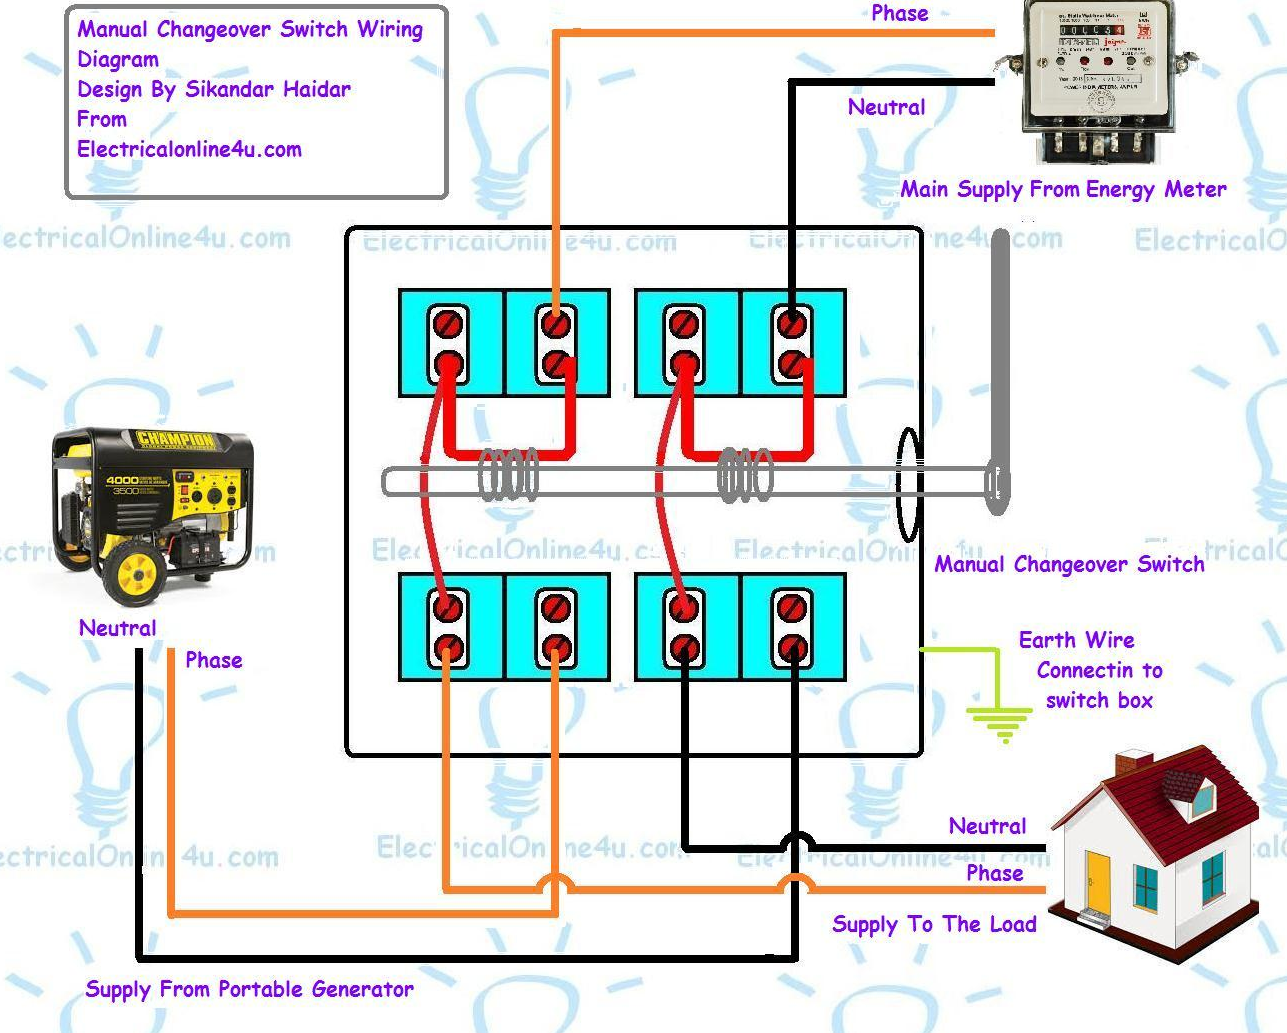 manual%2Bchangeover%2Bswitch%2Bwiring%2Bdiagram manual changeover switch wiring diagram for portable generator 3 phase manual changeover switch wiring diagram at aneh.co